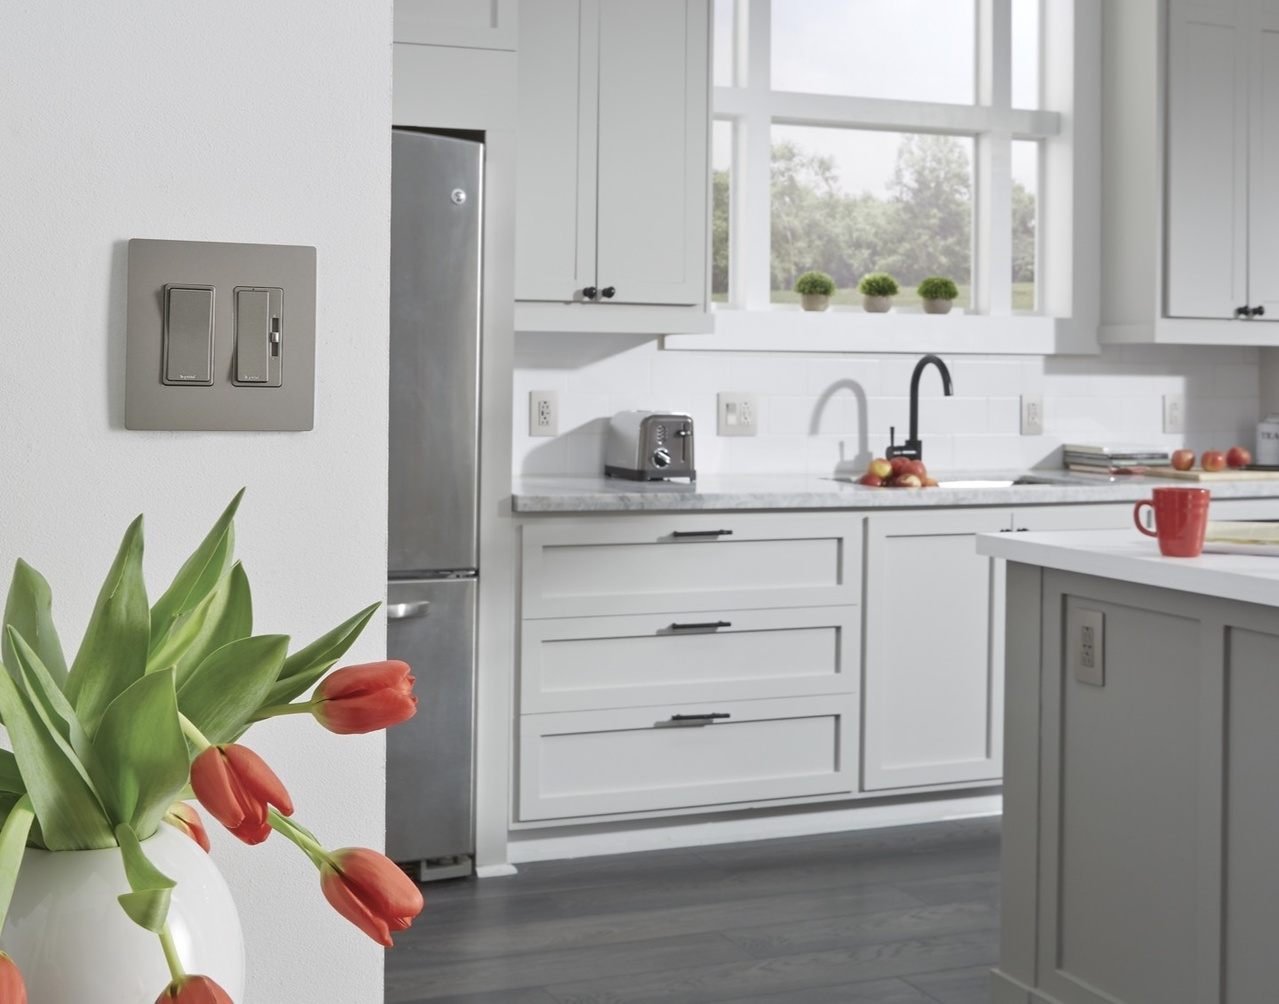 Desktop image of radiant switches in a transitional style kitchen